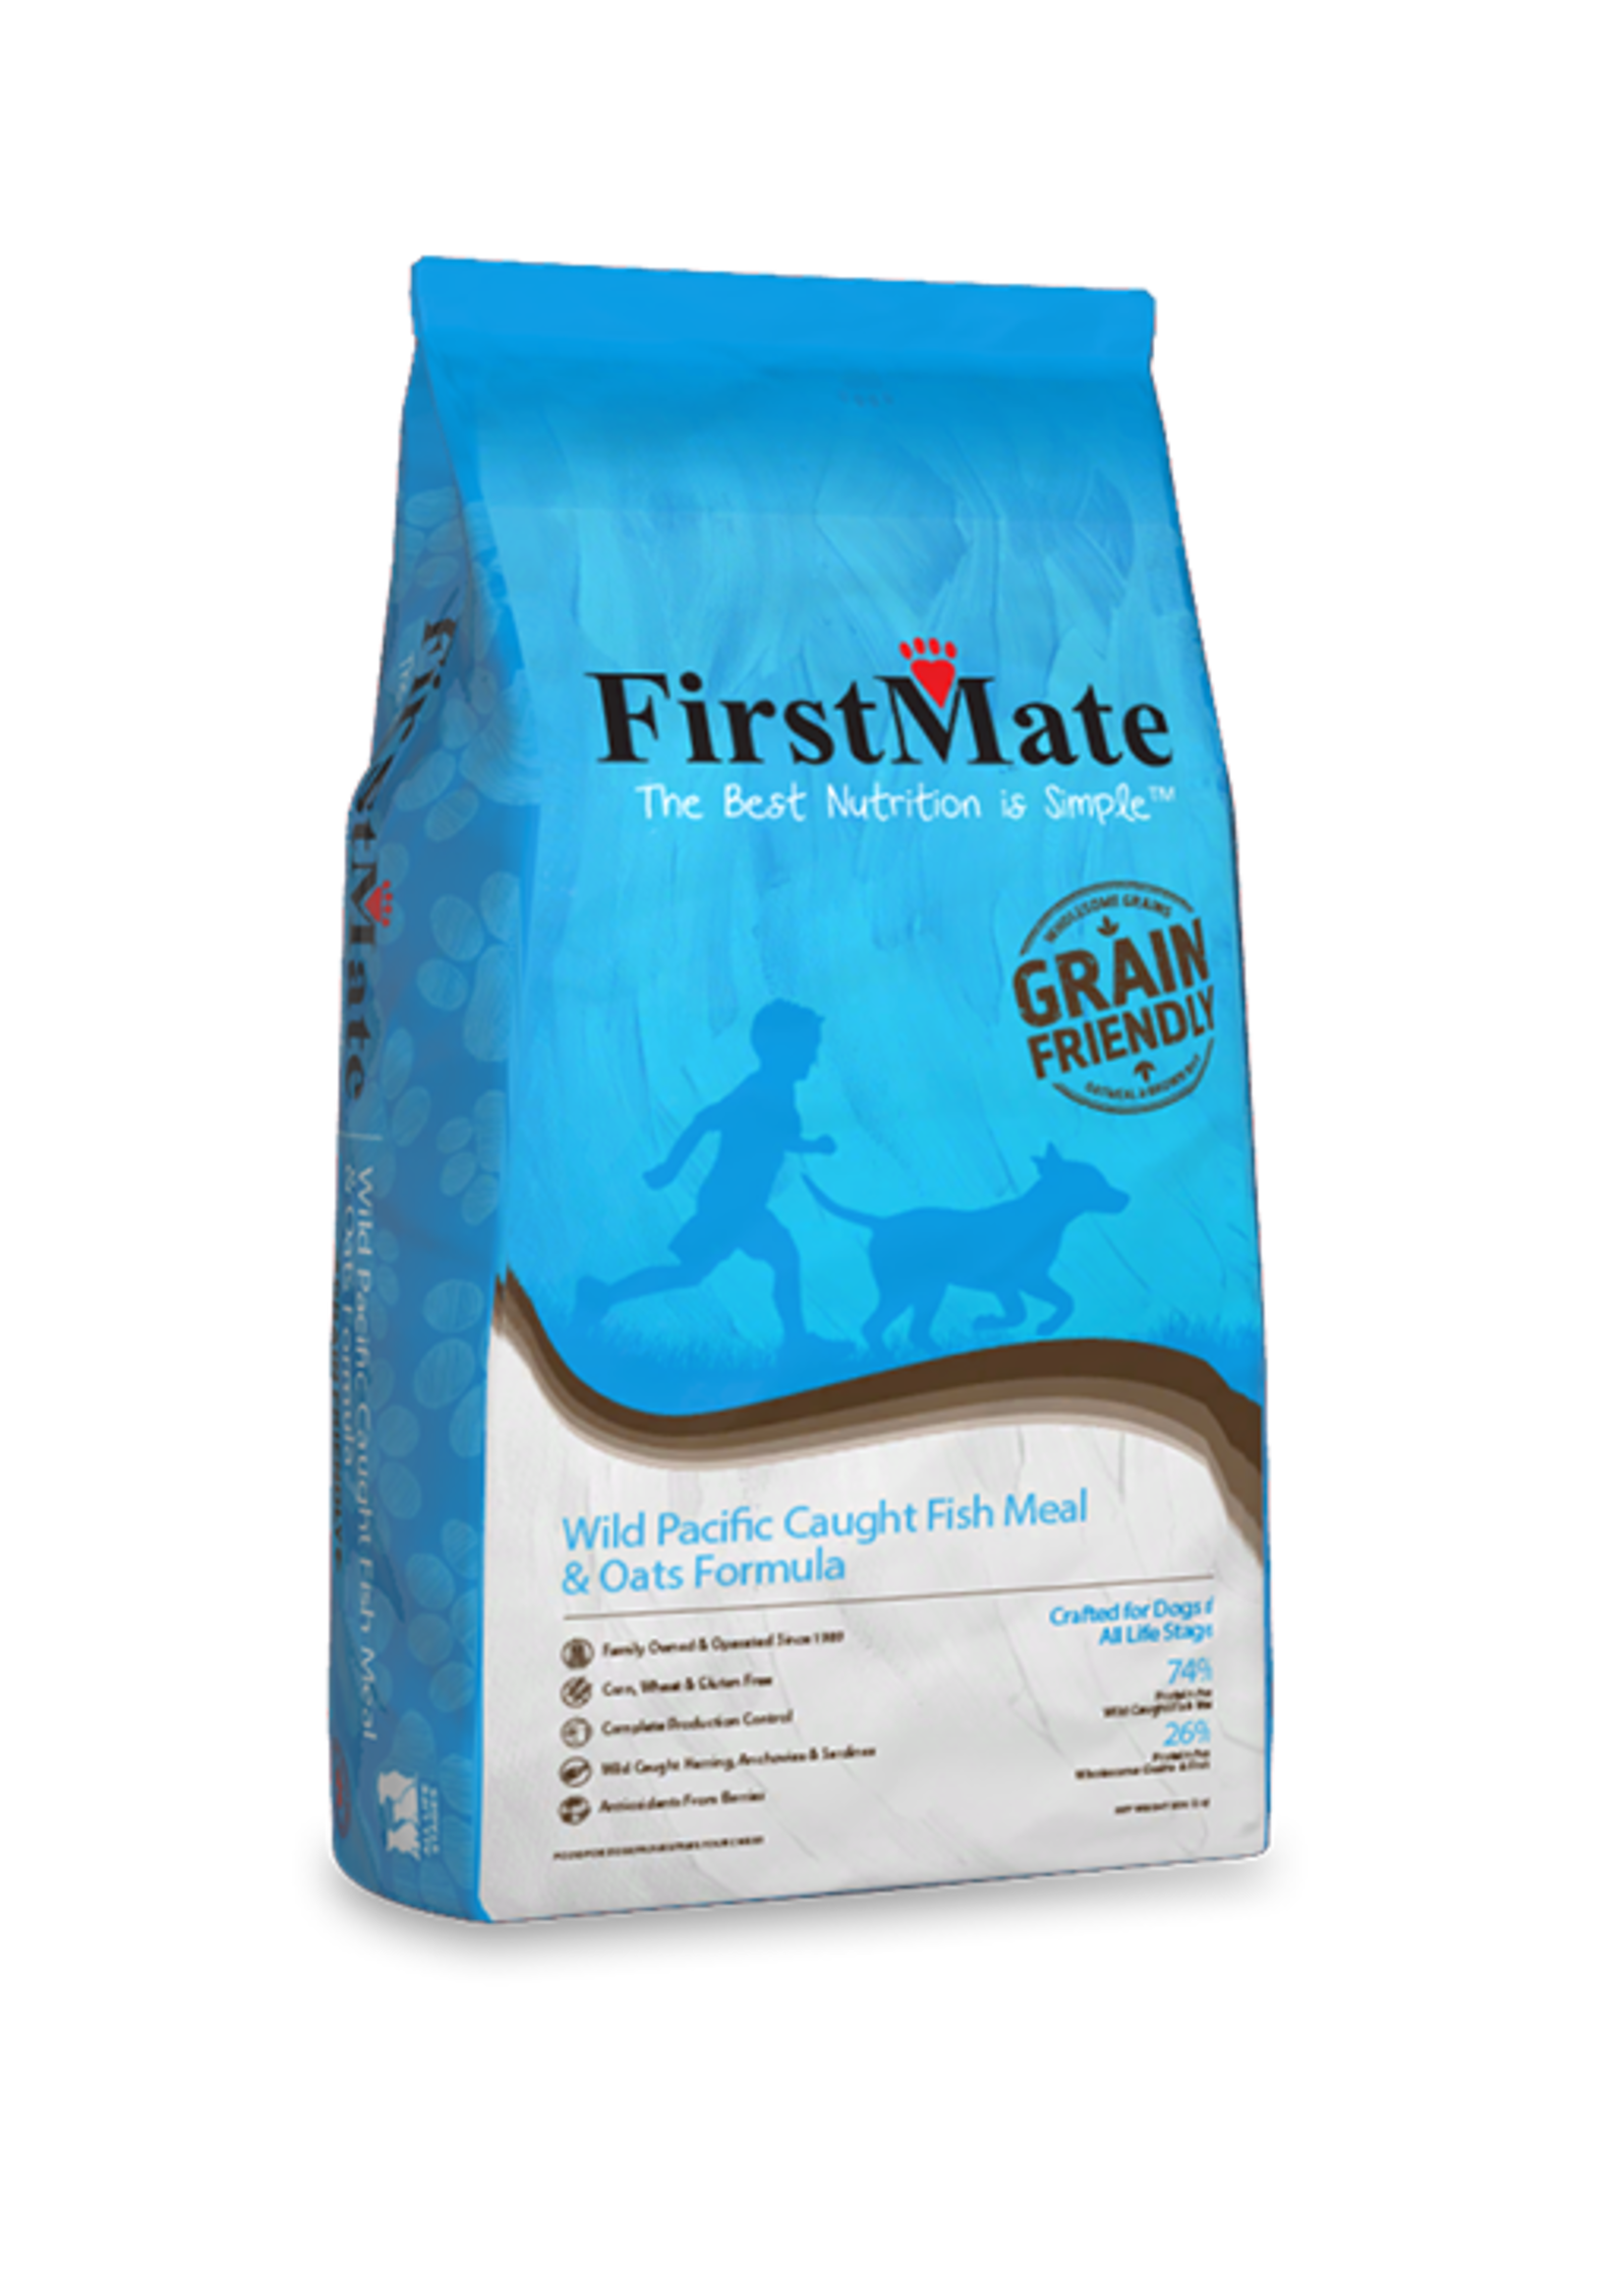 FirstMate FirstMate Wild Pacific Caught Fish Meal & Oats Formula 5lbs